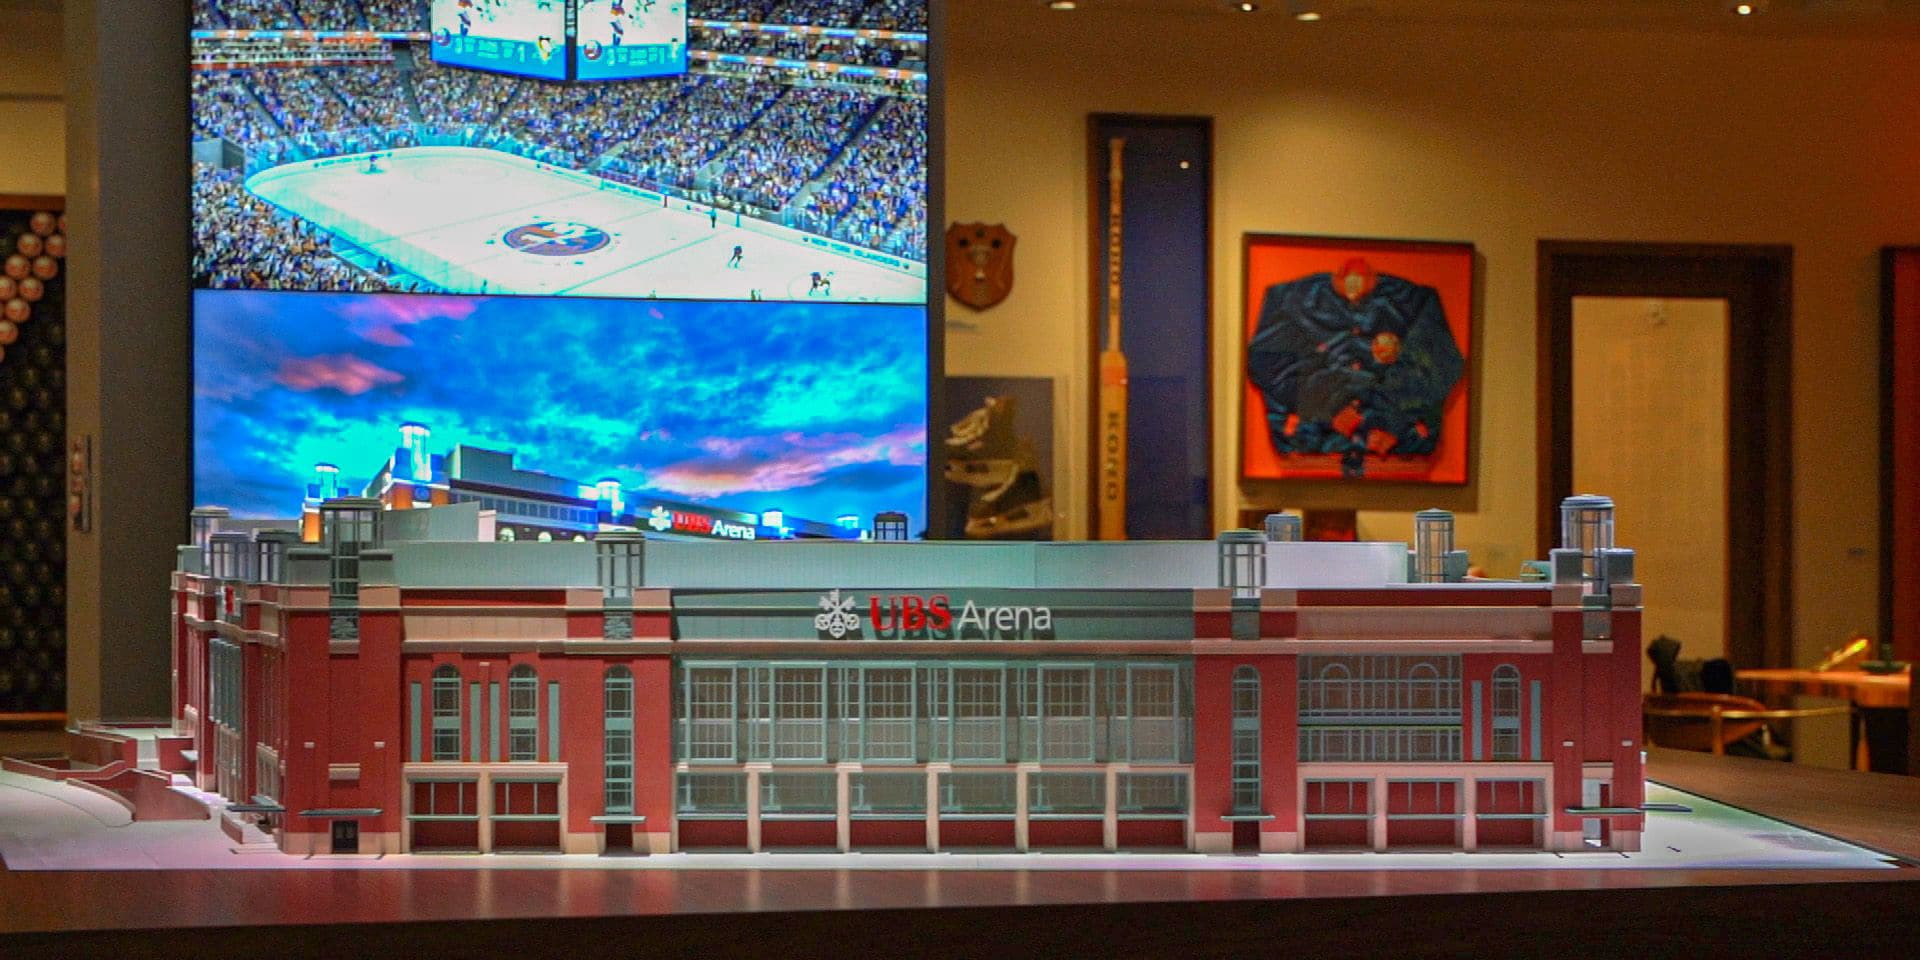 UBS Arena Preview Club Set to Reopen